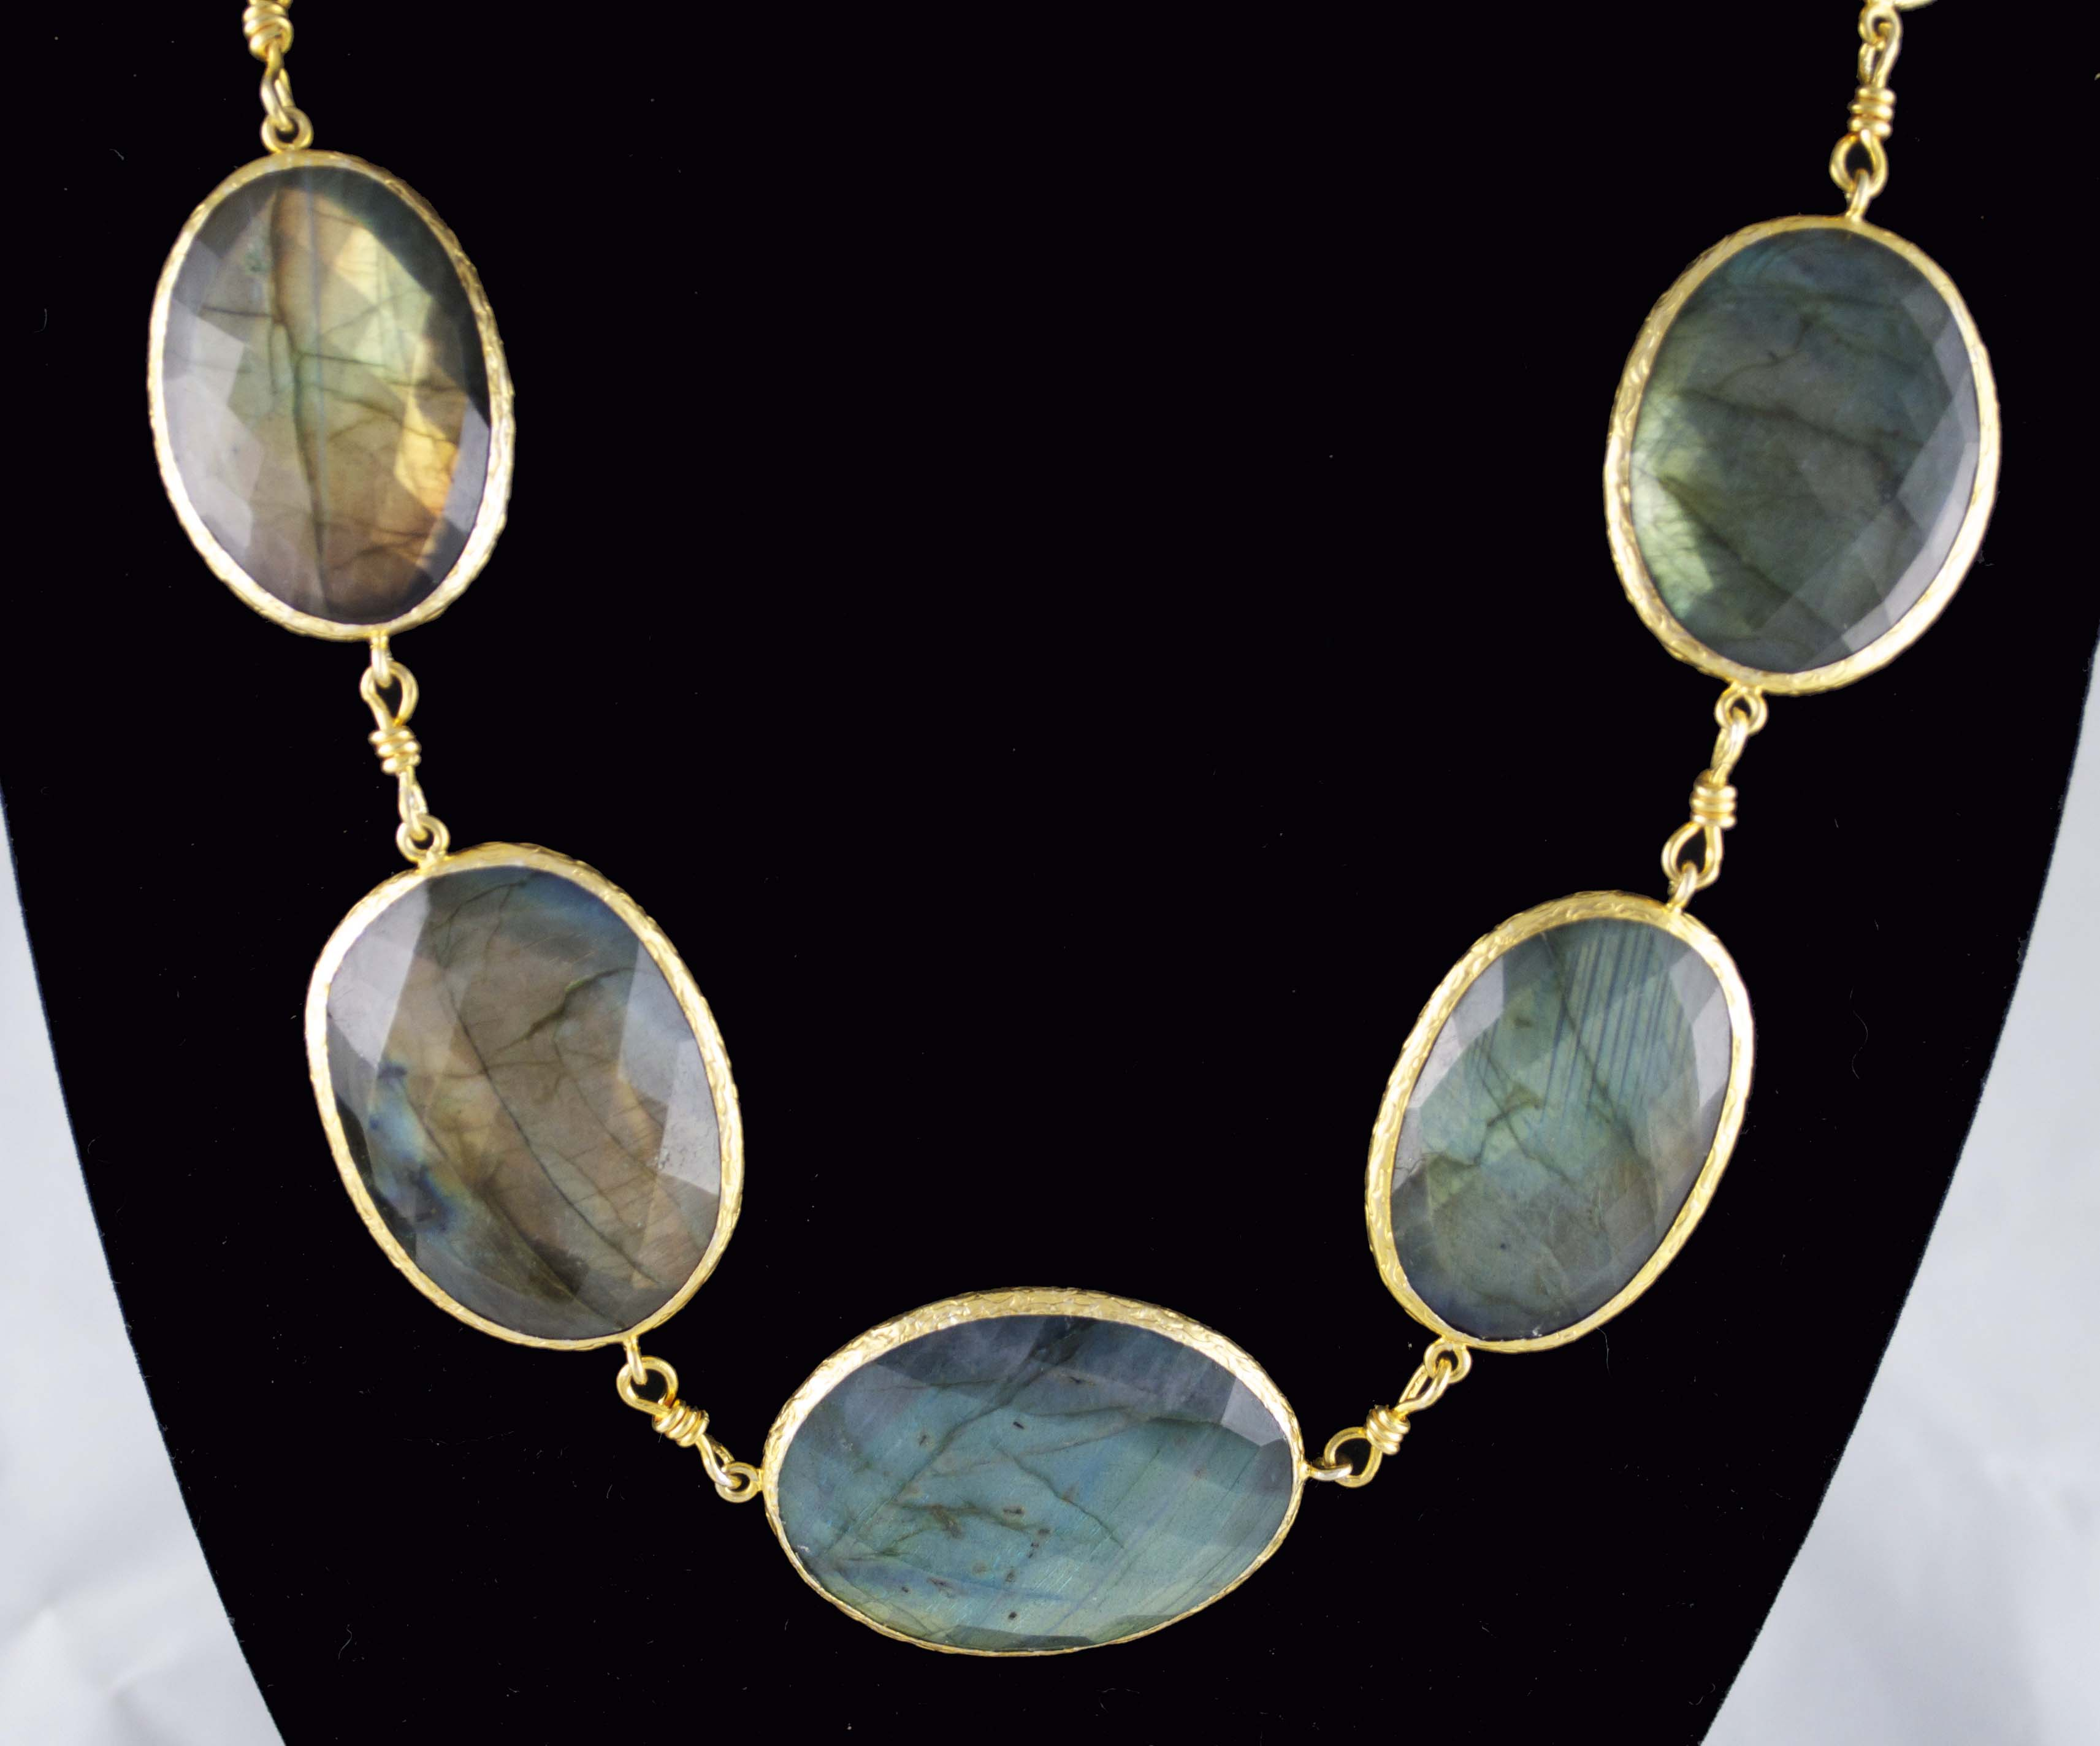 Lovely Labradorite Necklace Arabella Concepts